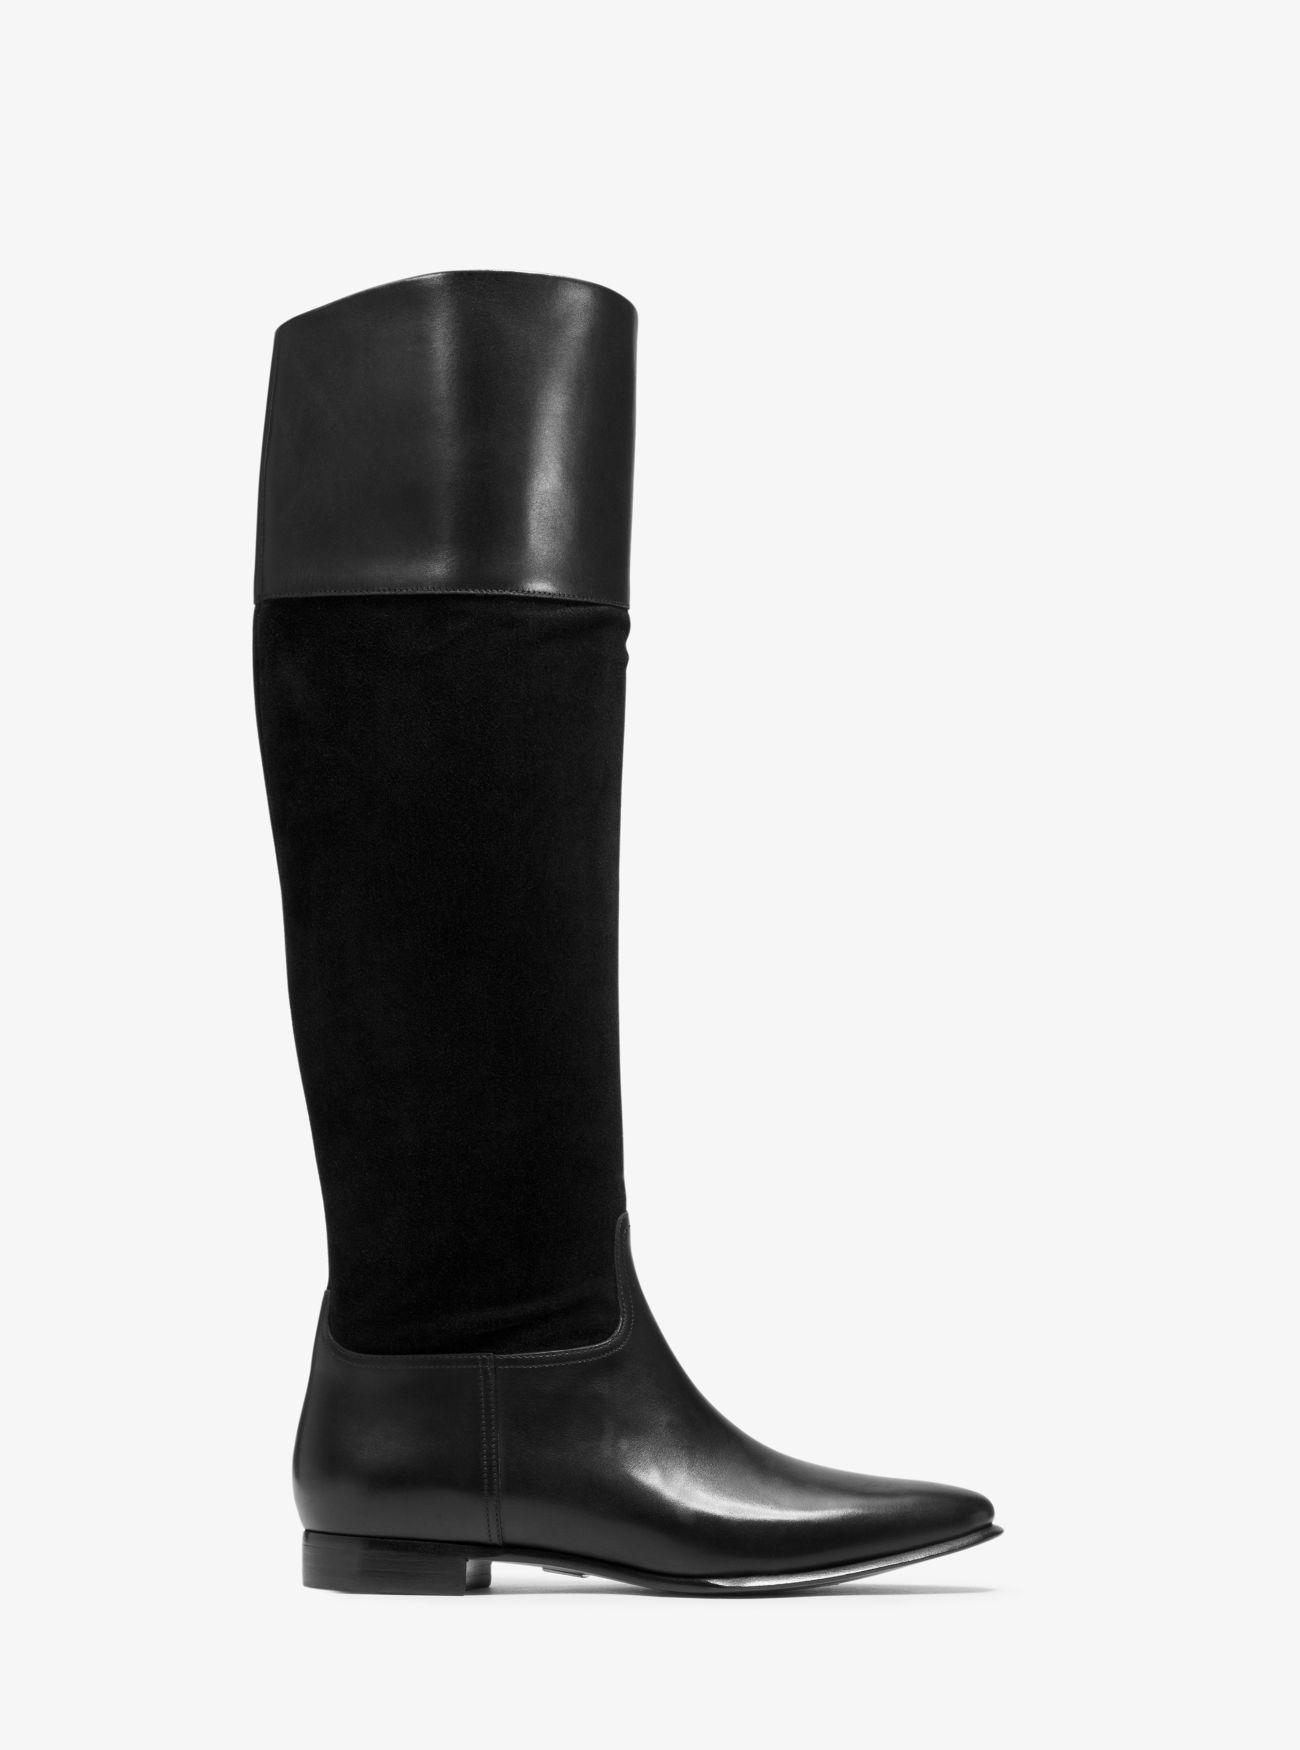 Michael Kors Rooney Leather And Suede Boot in Black